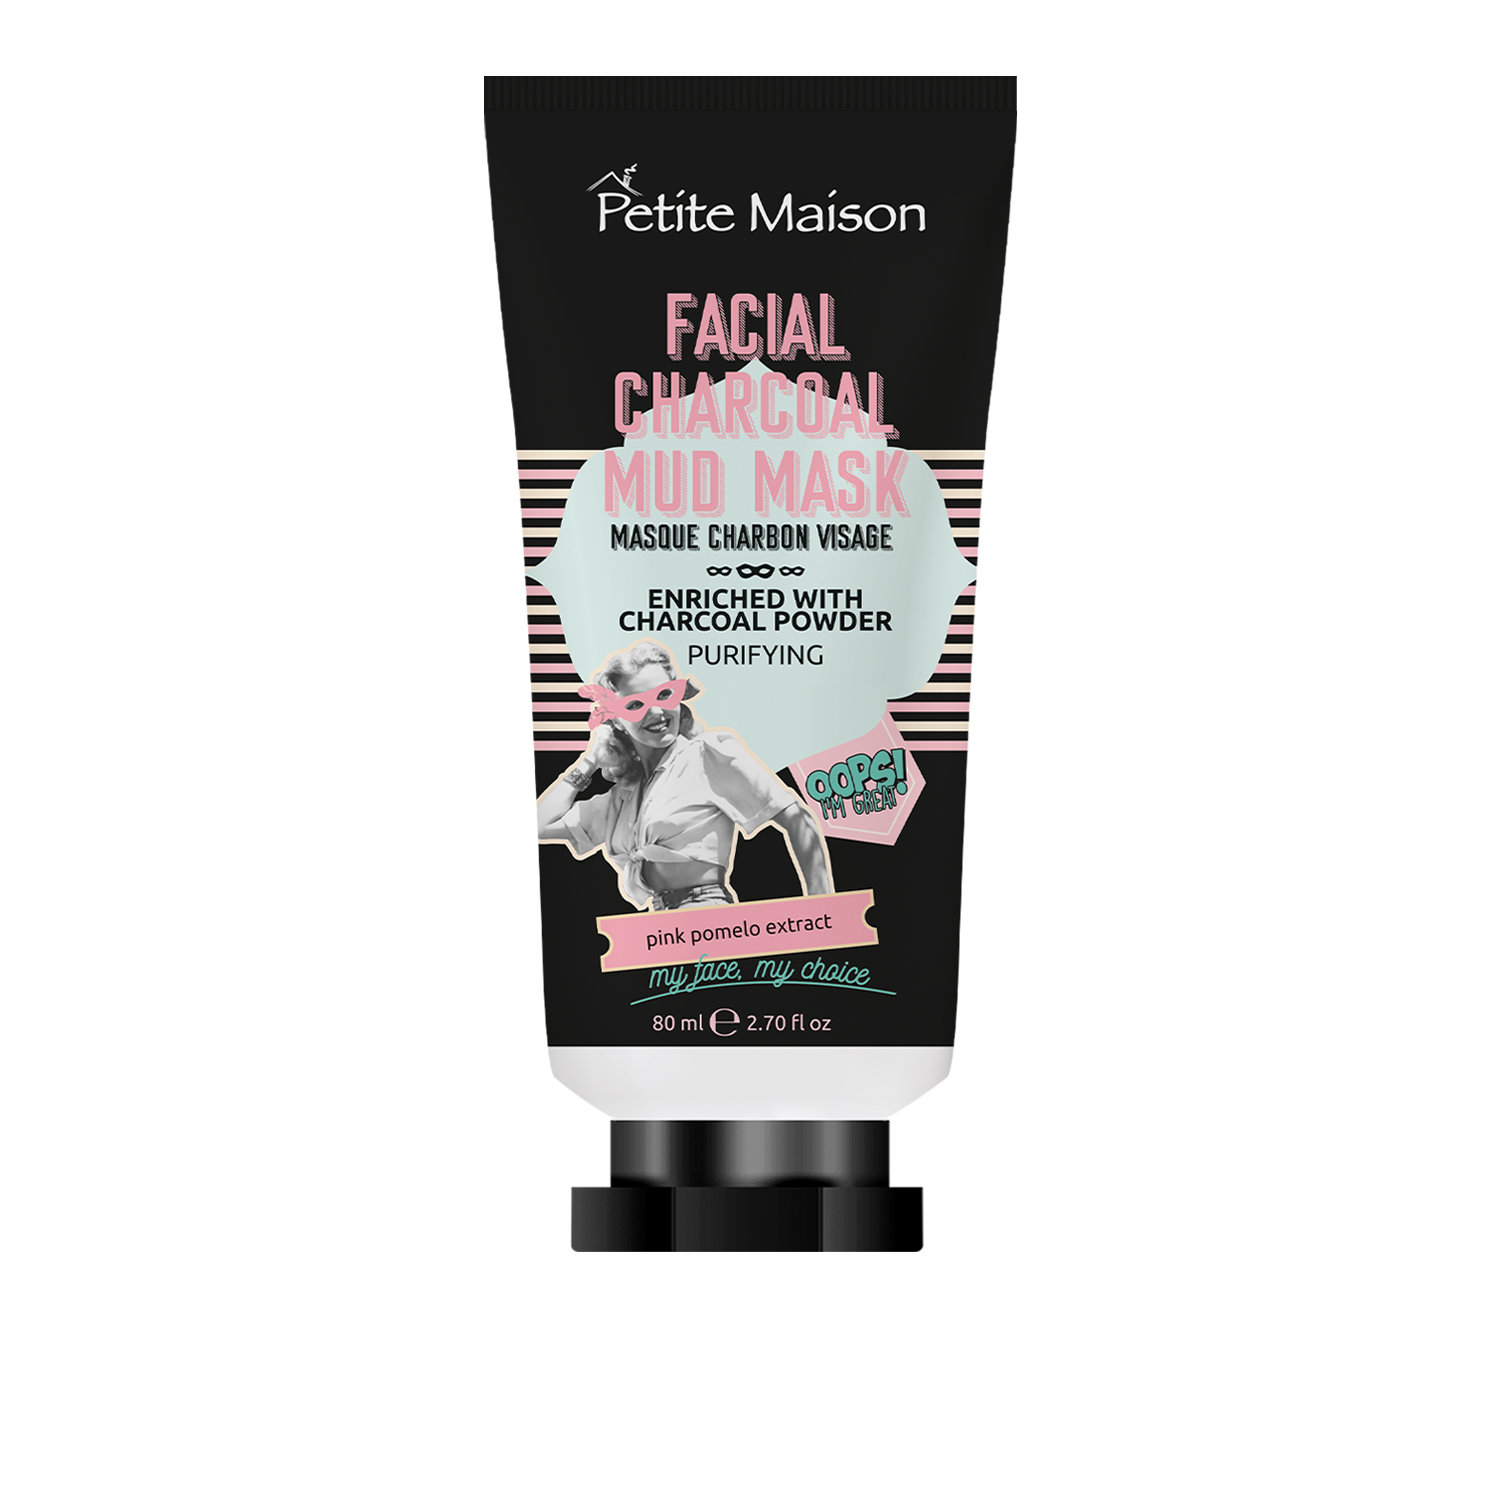 Petite Maison Facial Charcoal Mud Mask